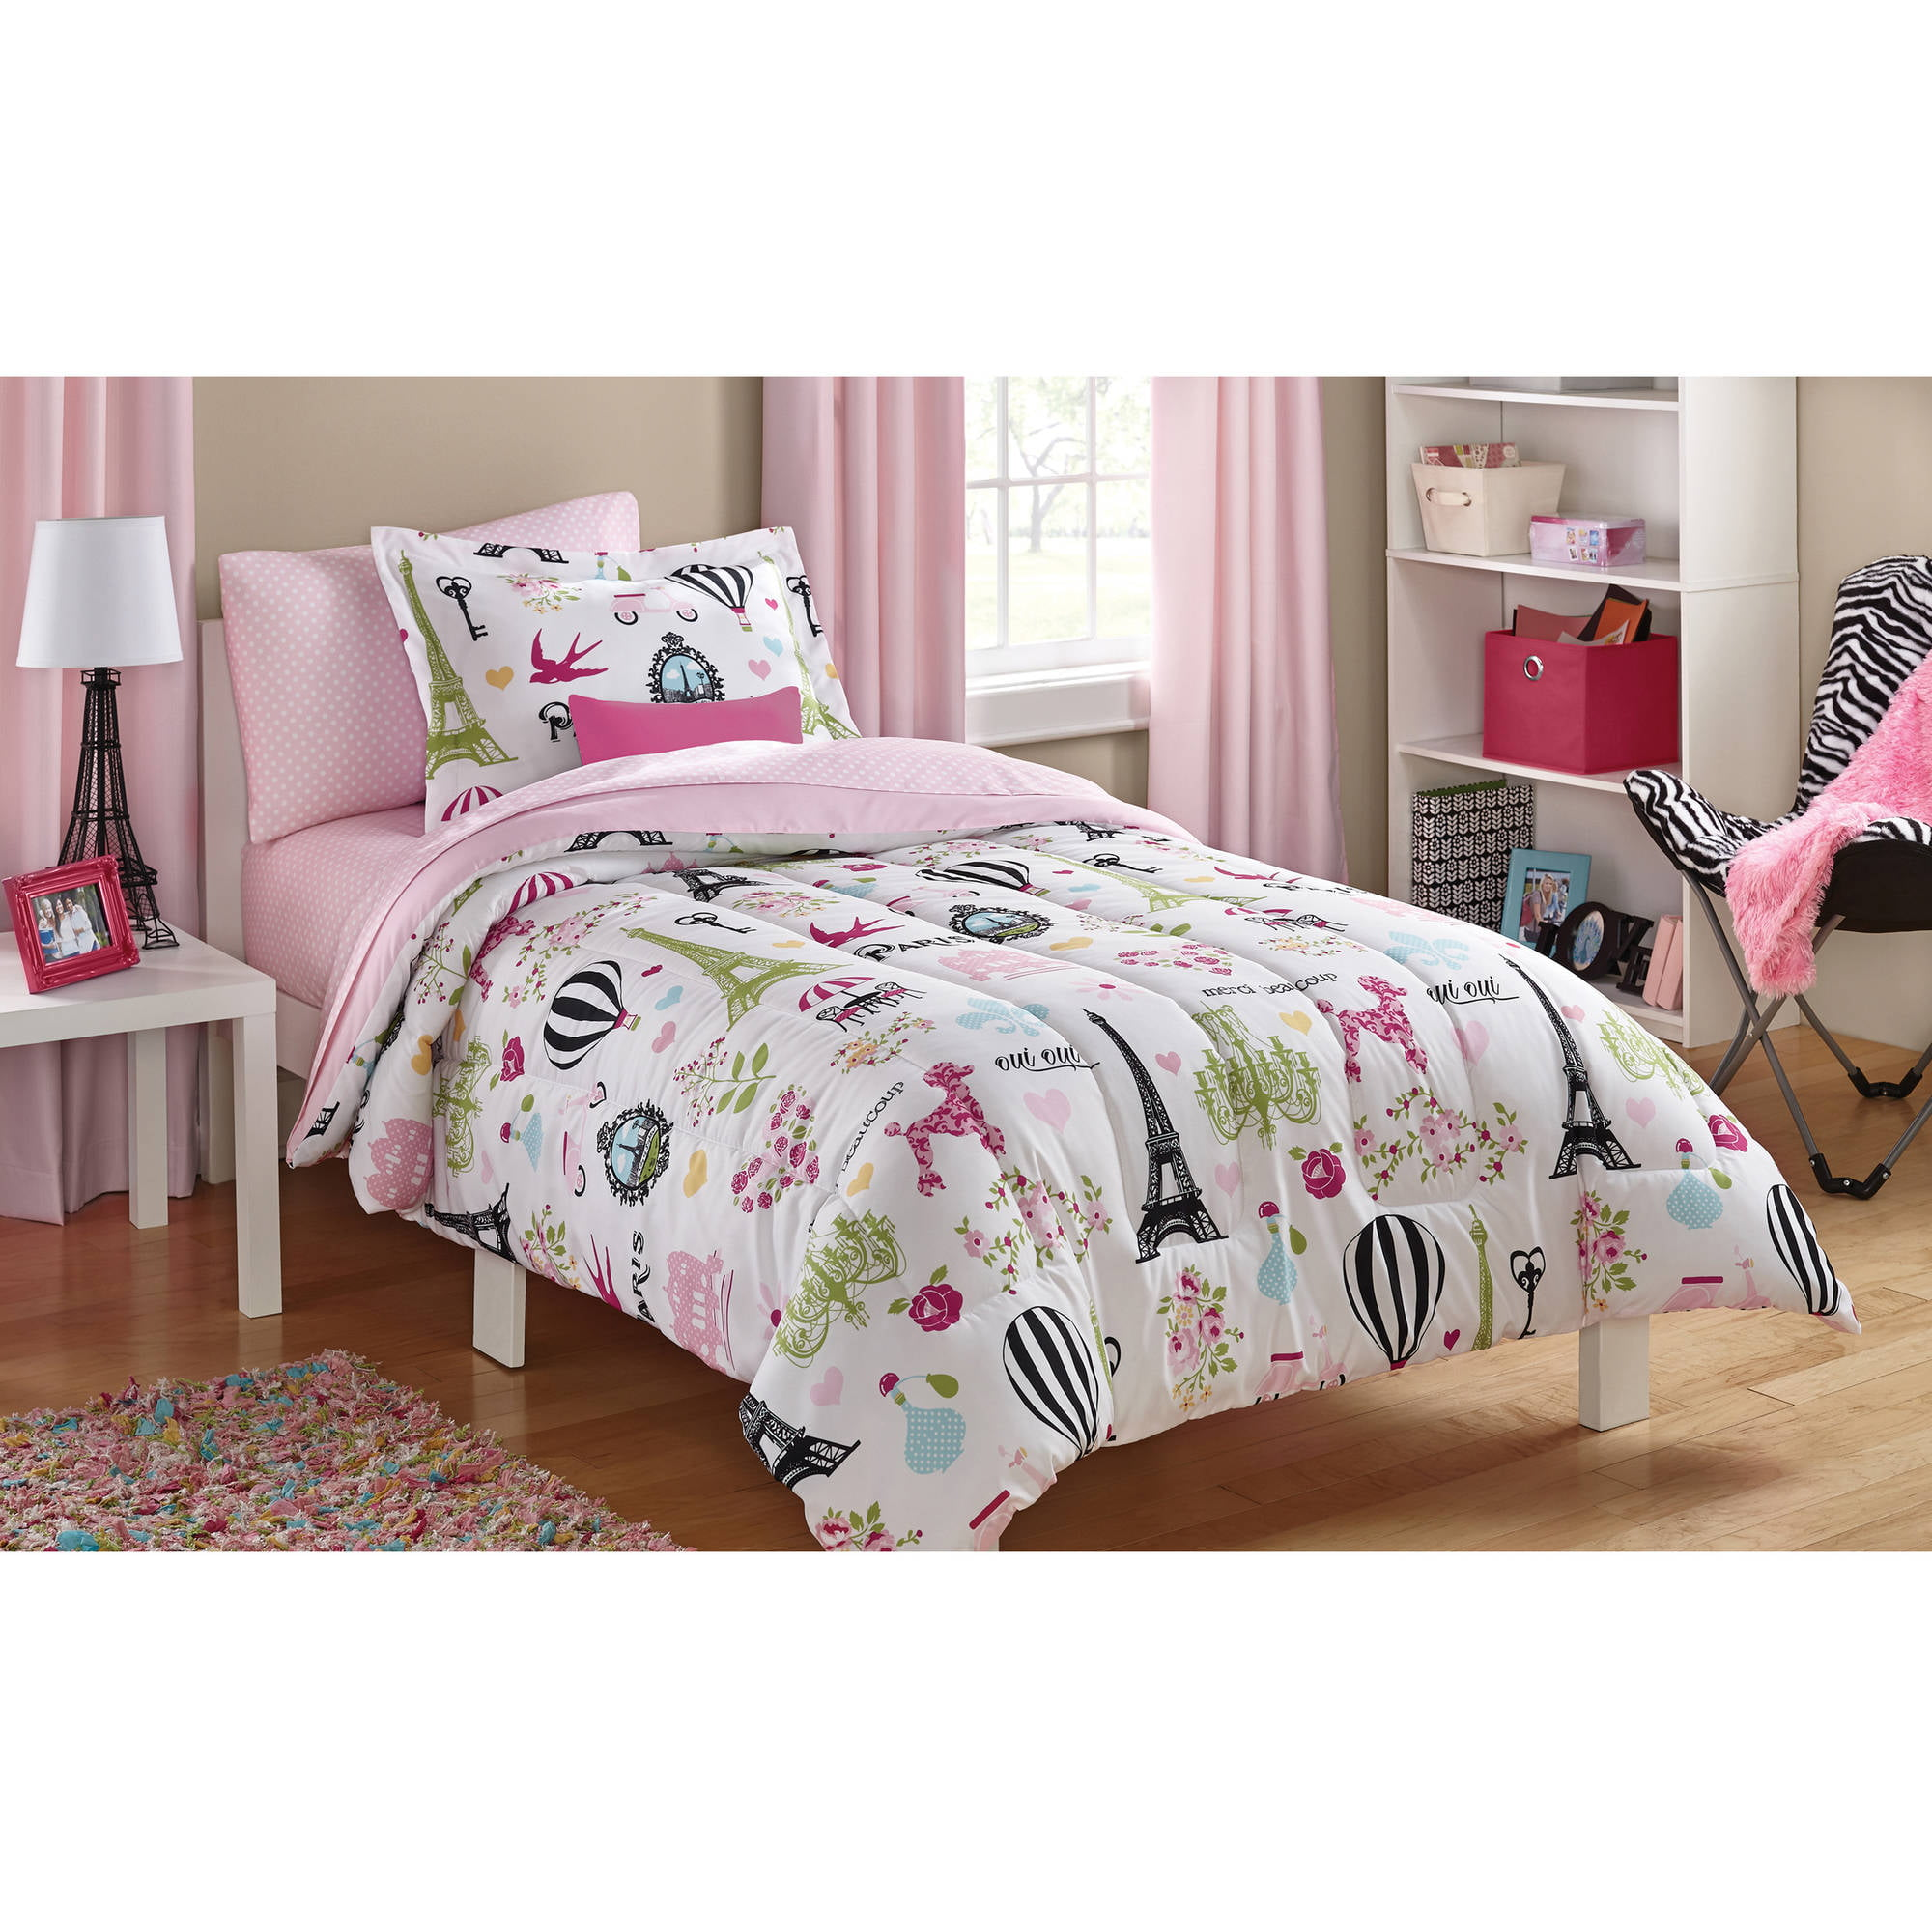 annie in bed kids set save a comforter pink bedding bag leopard